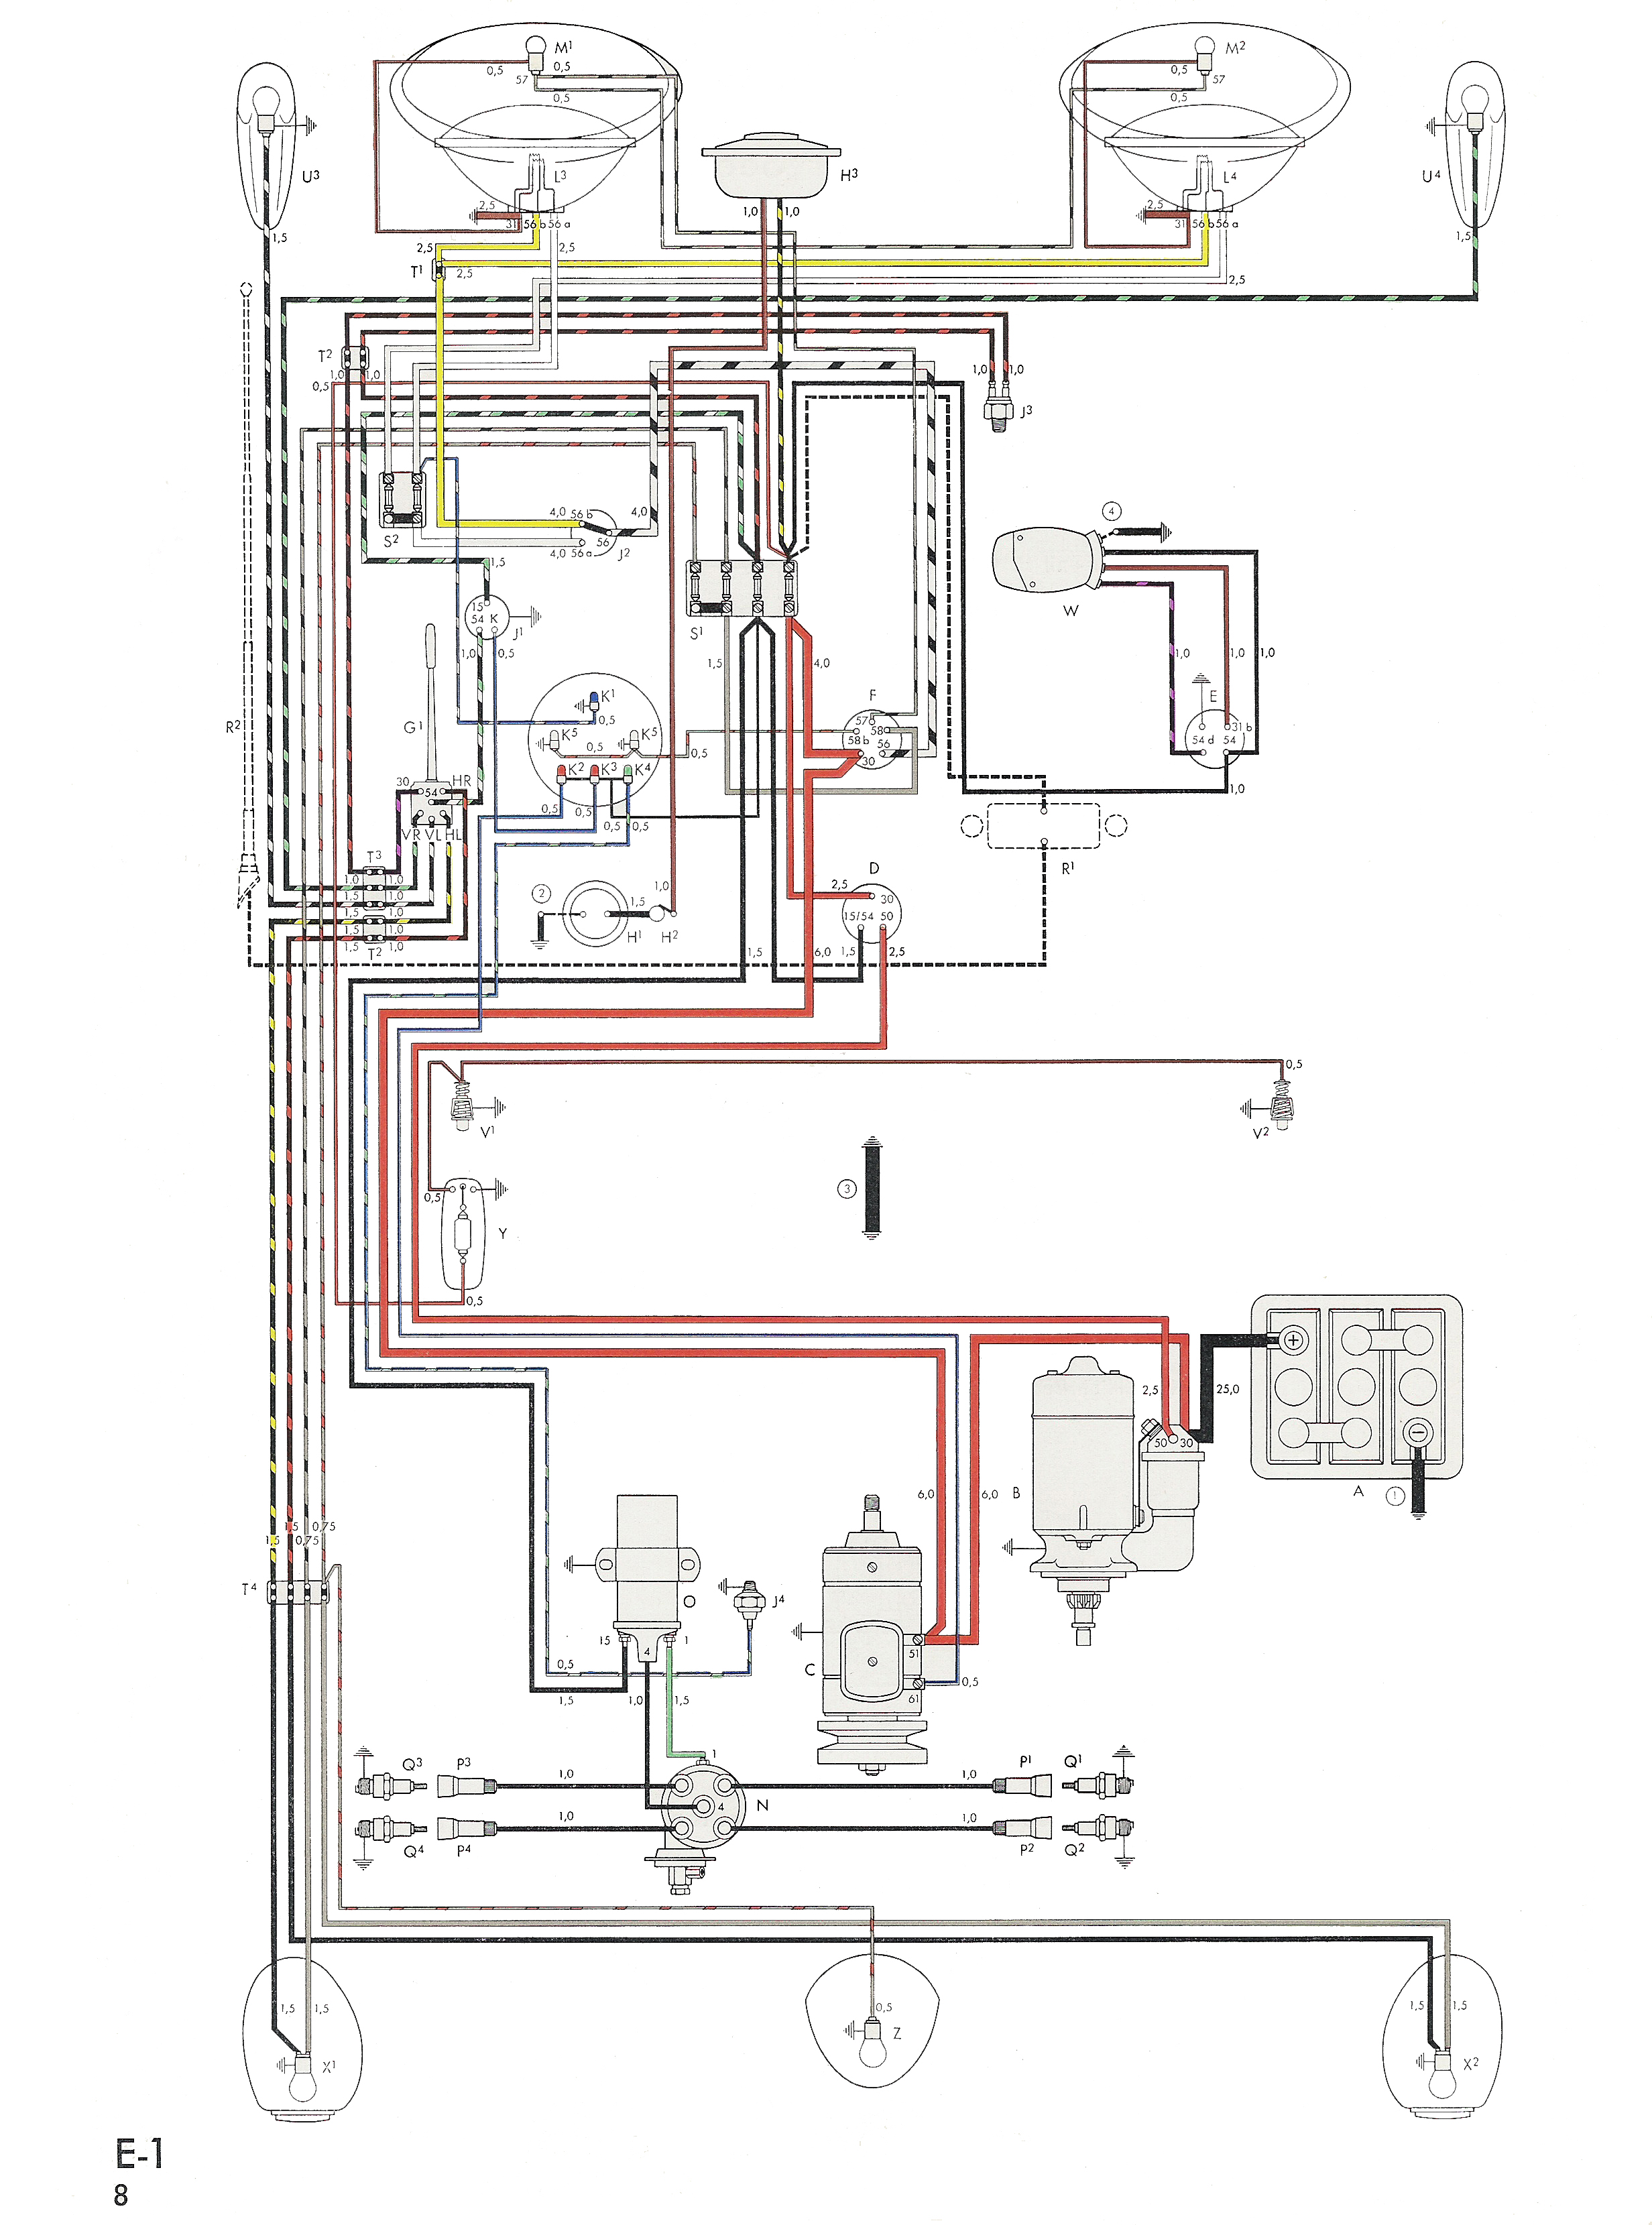 bug_58_USA_300dpi thesamba com type 1 wiring diagrams vw engine wiring diagram at nearapp.co